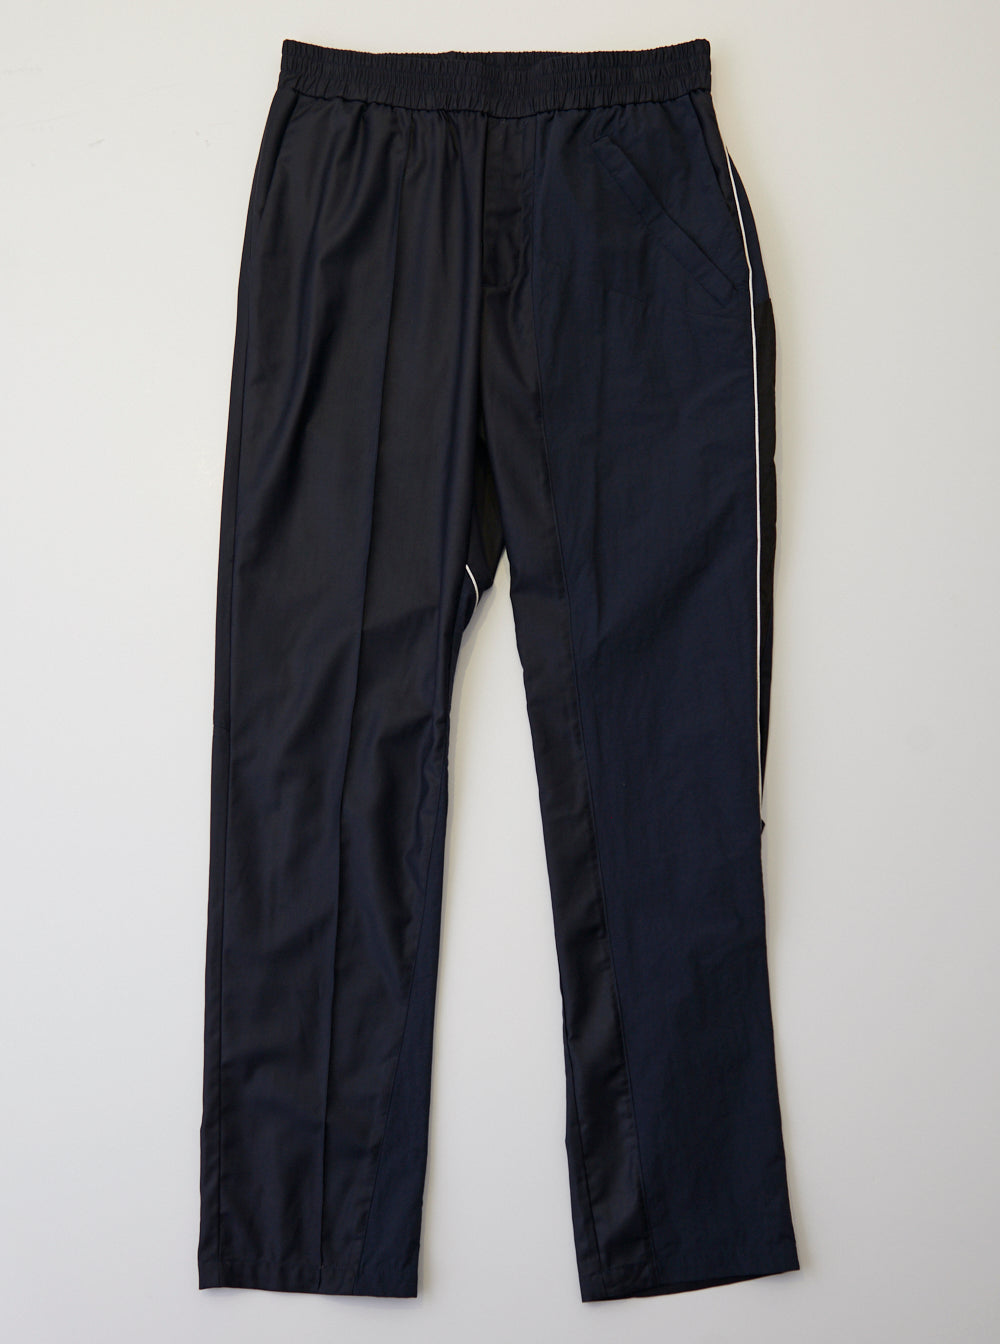 Vinti Andrews Panel Trousers Black Suiting